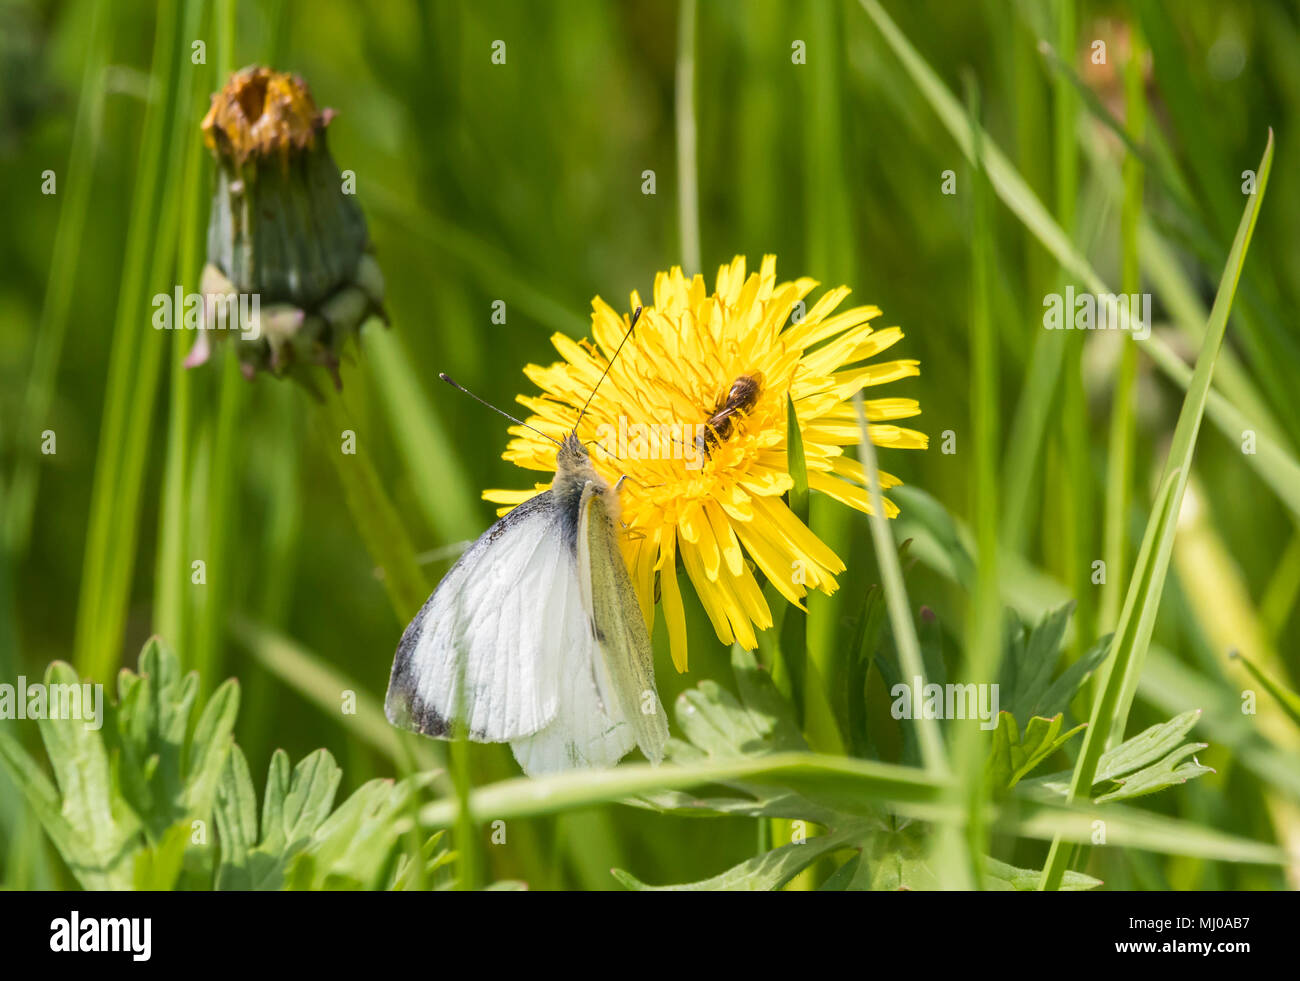 Green-Veined White butterfly (Pieris napi) on a Common Dandelion (Taraxacum officinale) flower head in late Spring in West Sussex, England, UK. - Stock Image